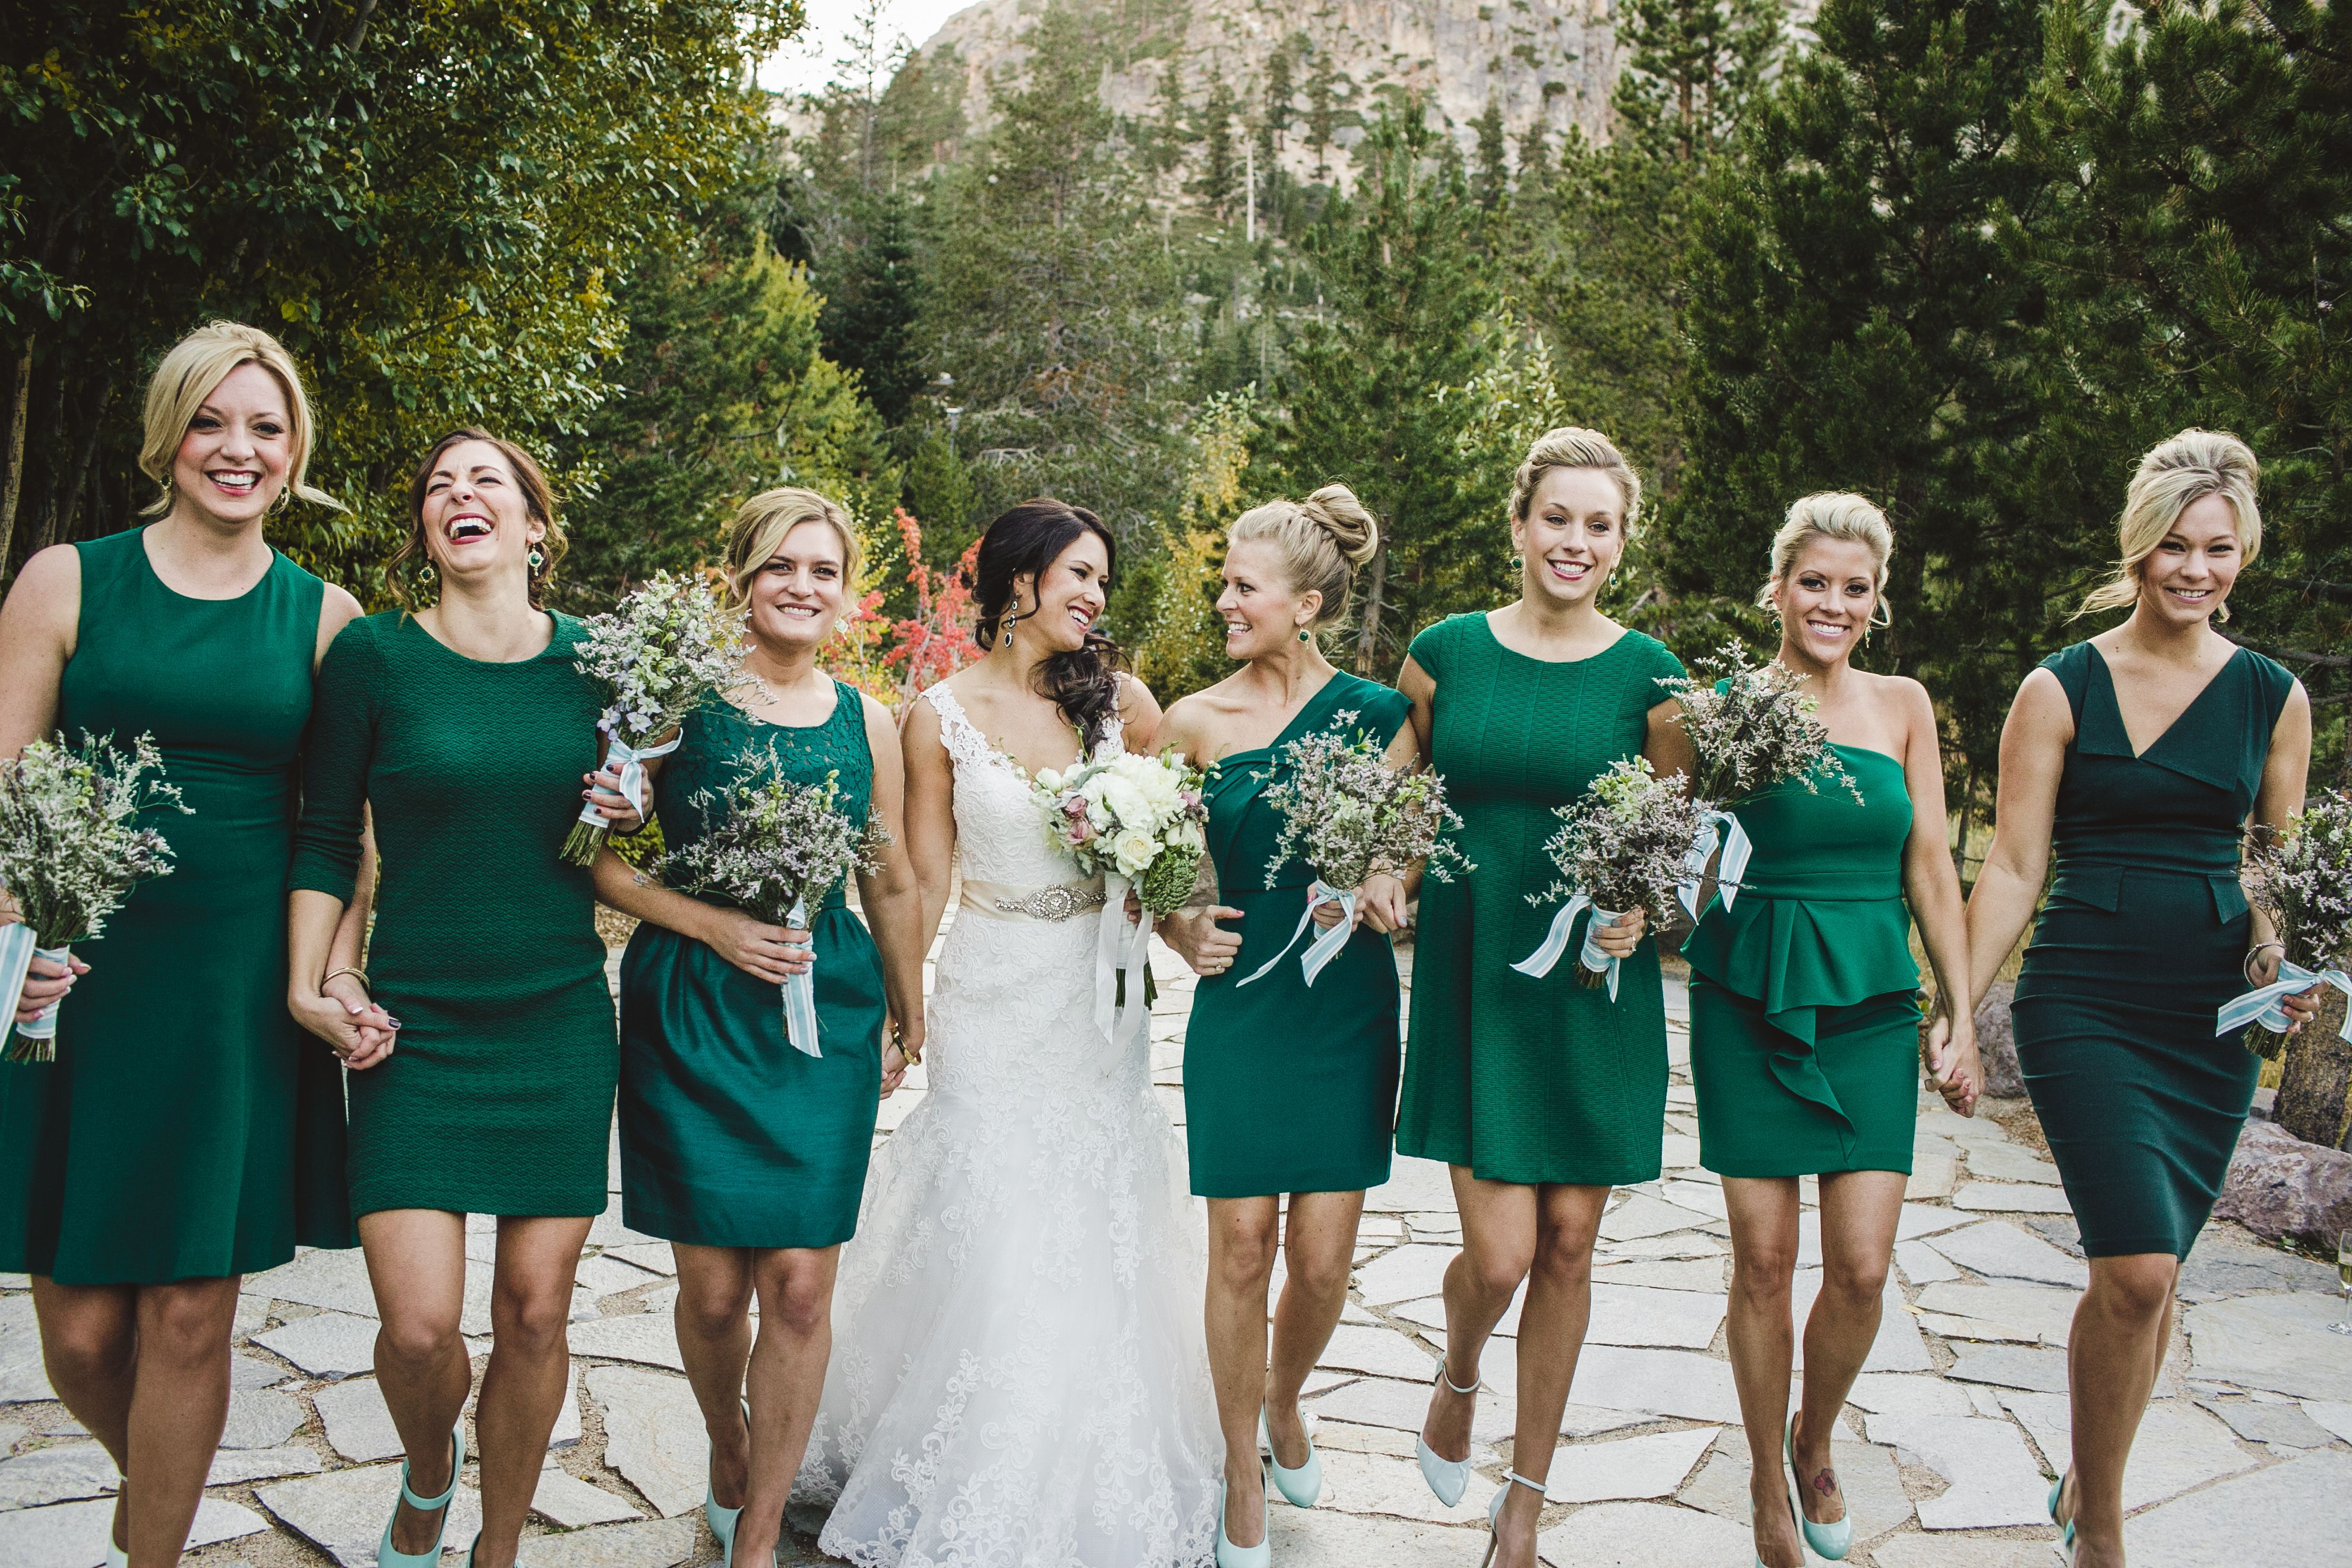 Emerald Green Bridesmaid Dresses Complementary Let Each Pick Their Own Dress Bridesmaids